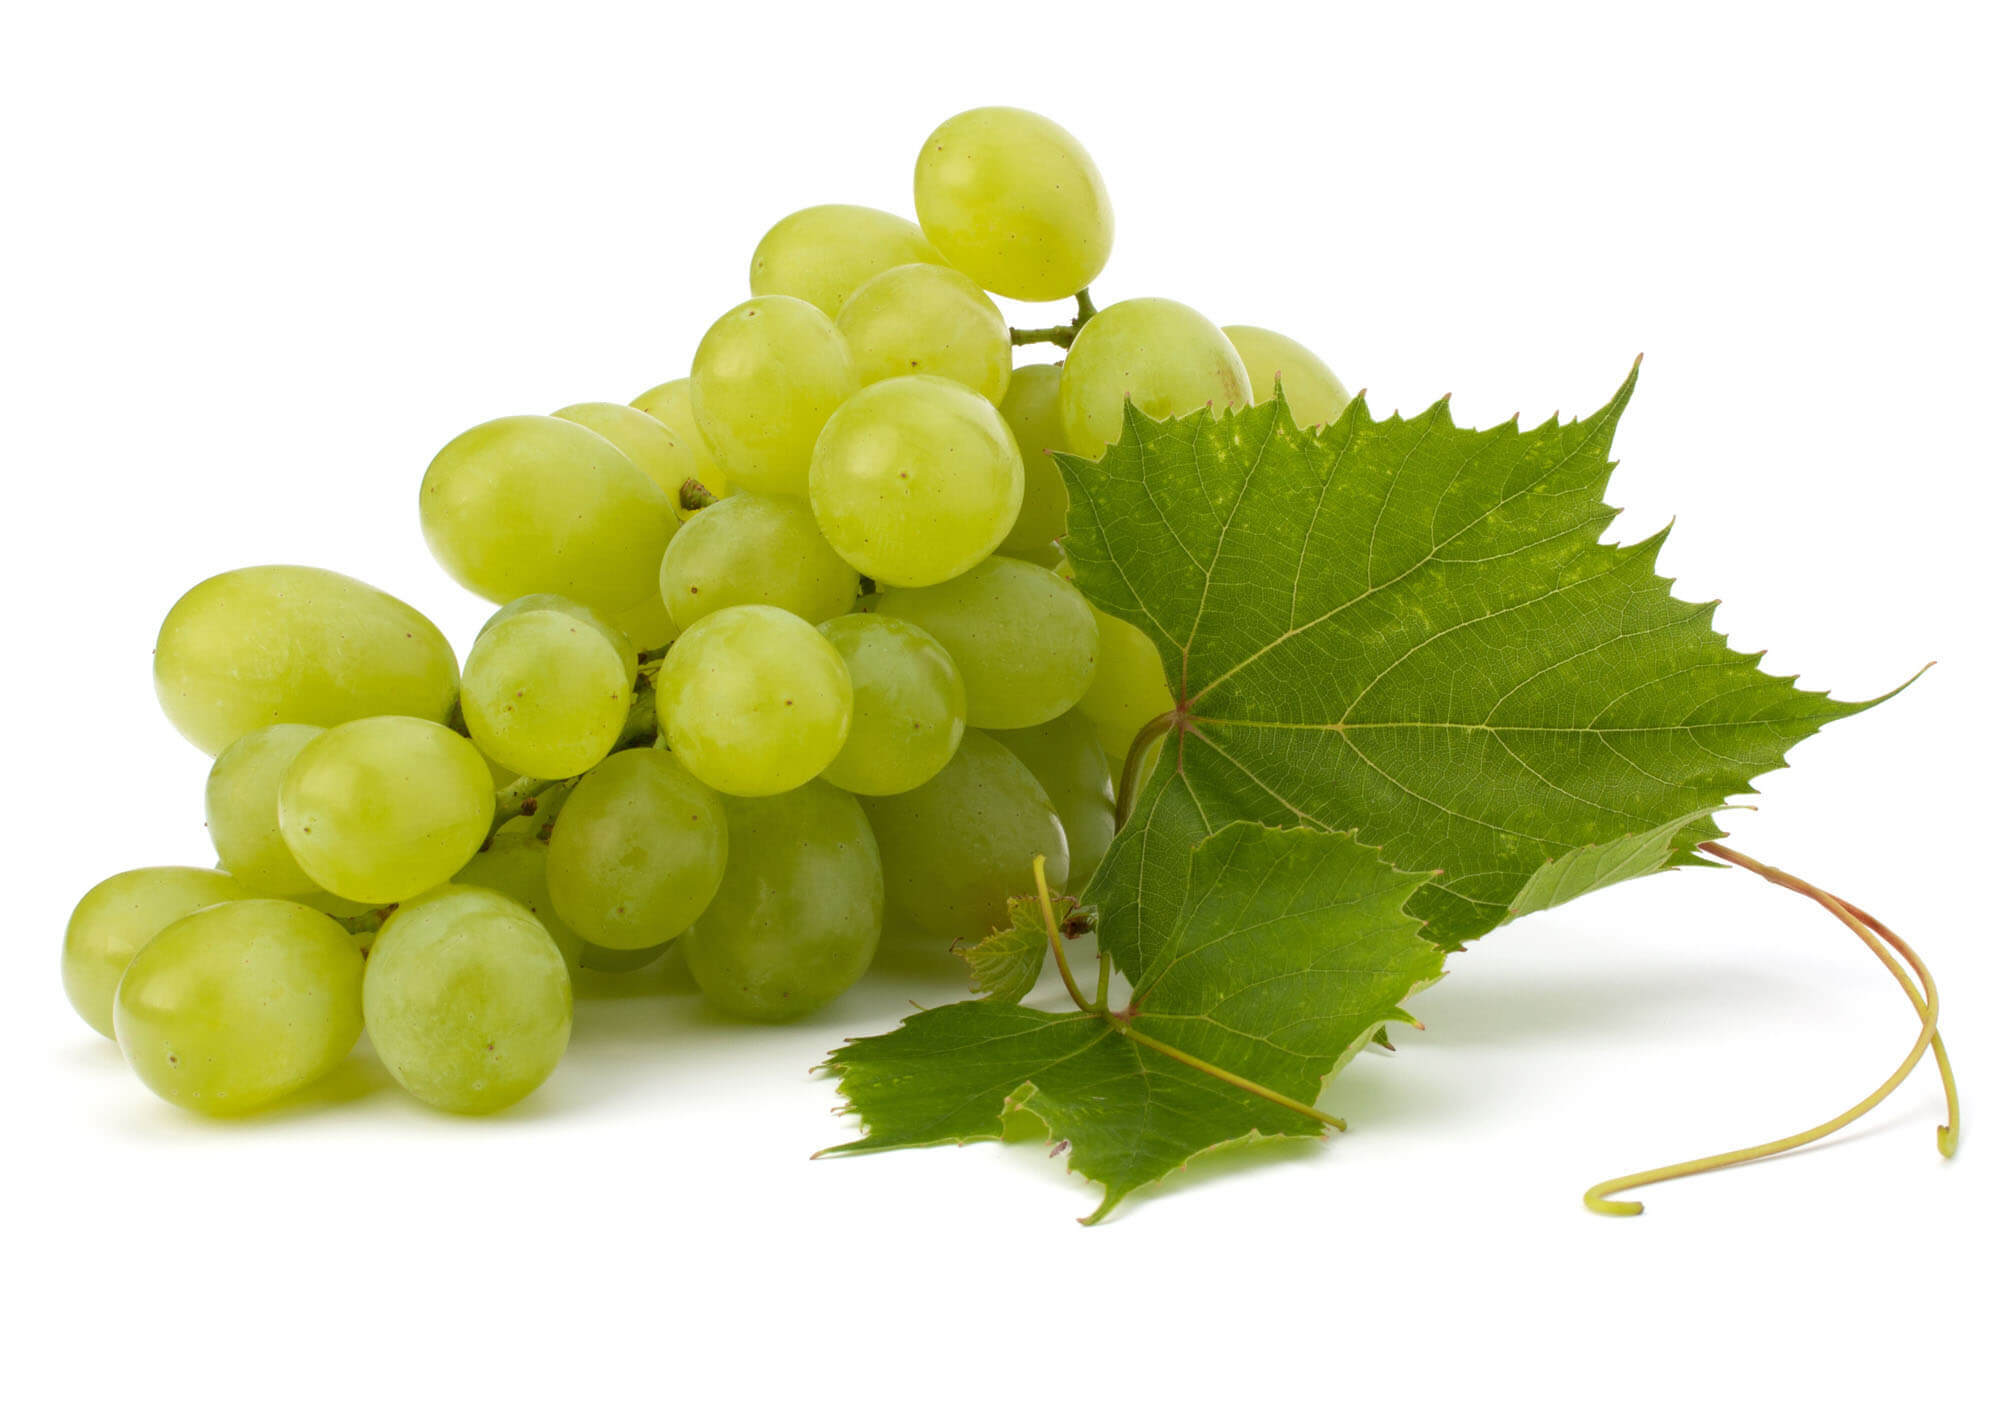 Eating grapes every day can be good and green grapes have less sugar than red